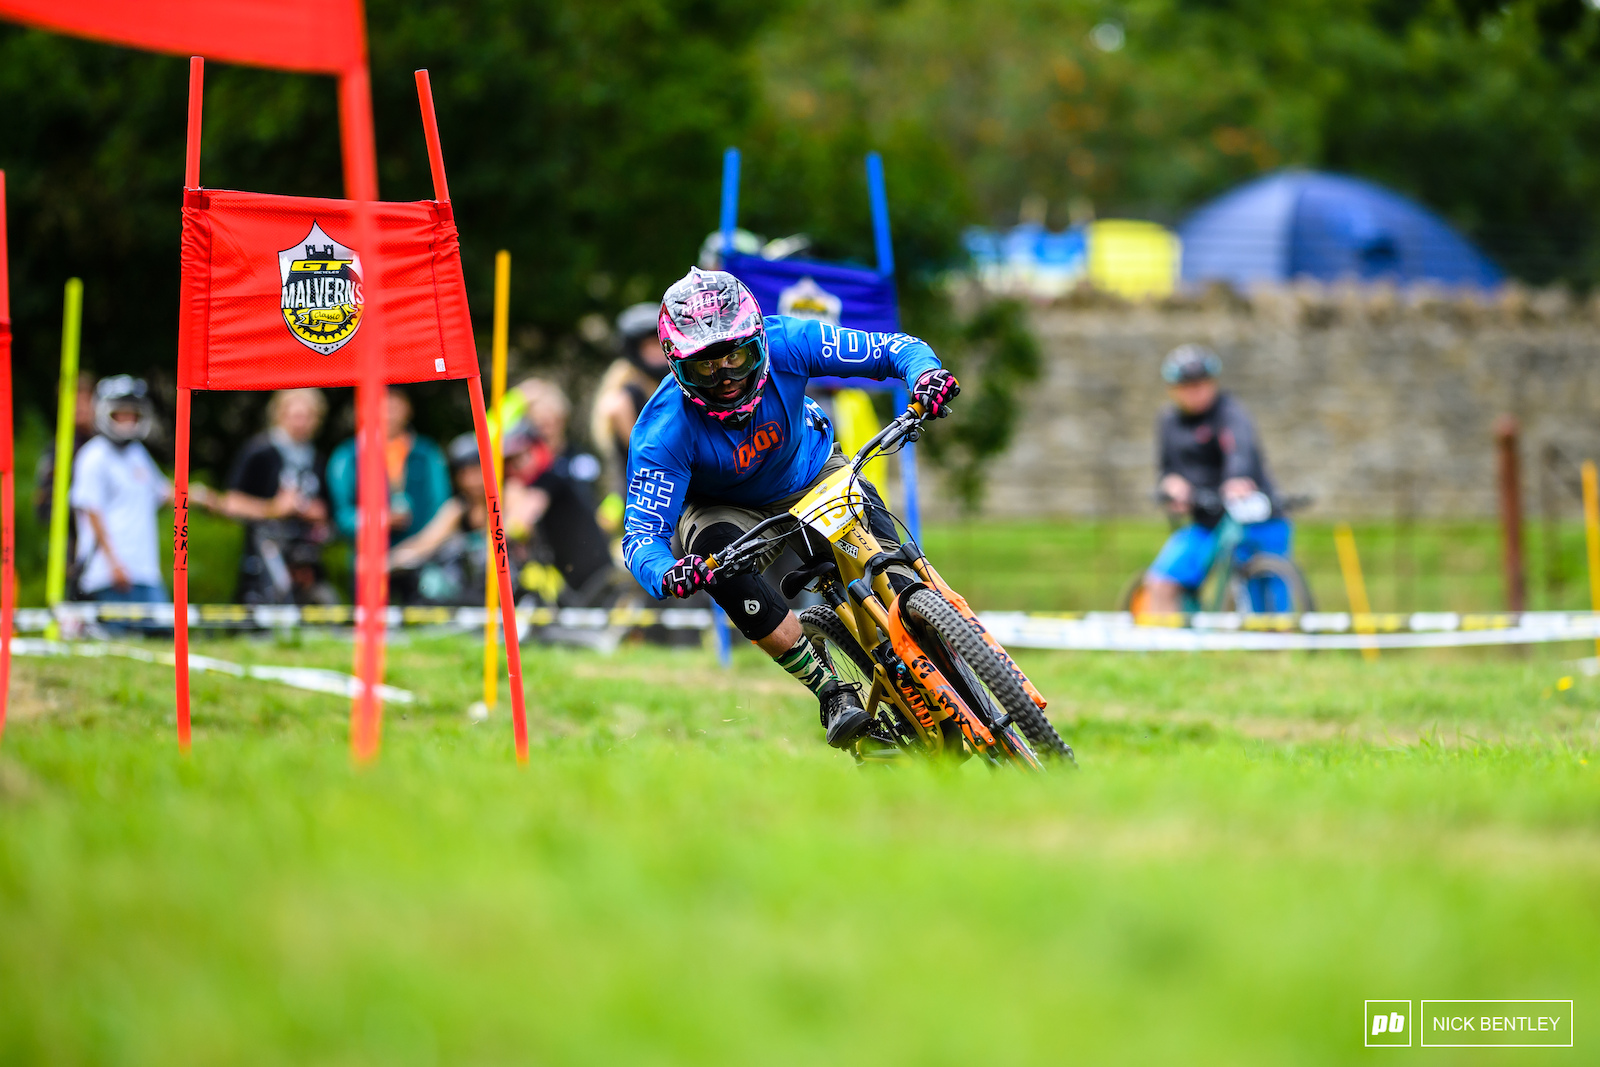 Dual Slalom pushes your tyres to the limit